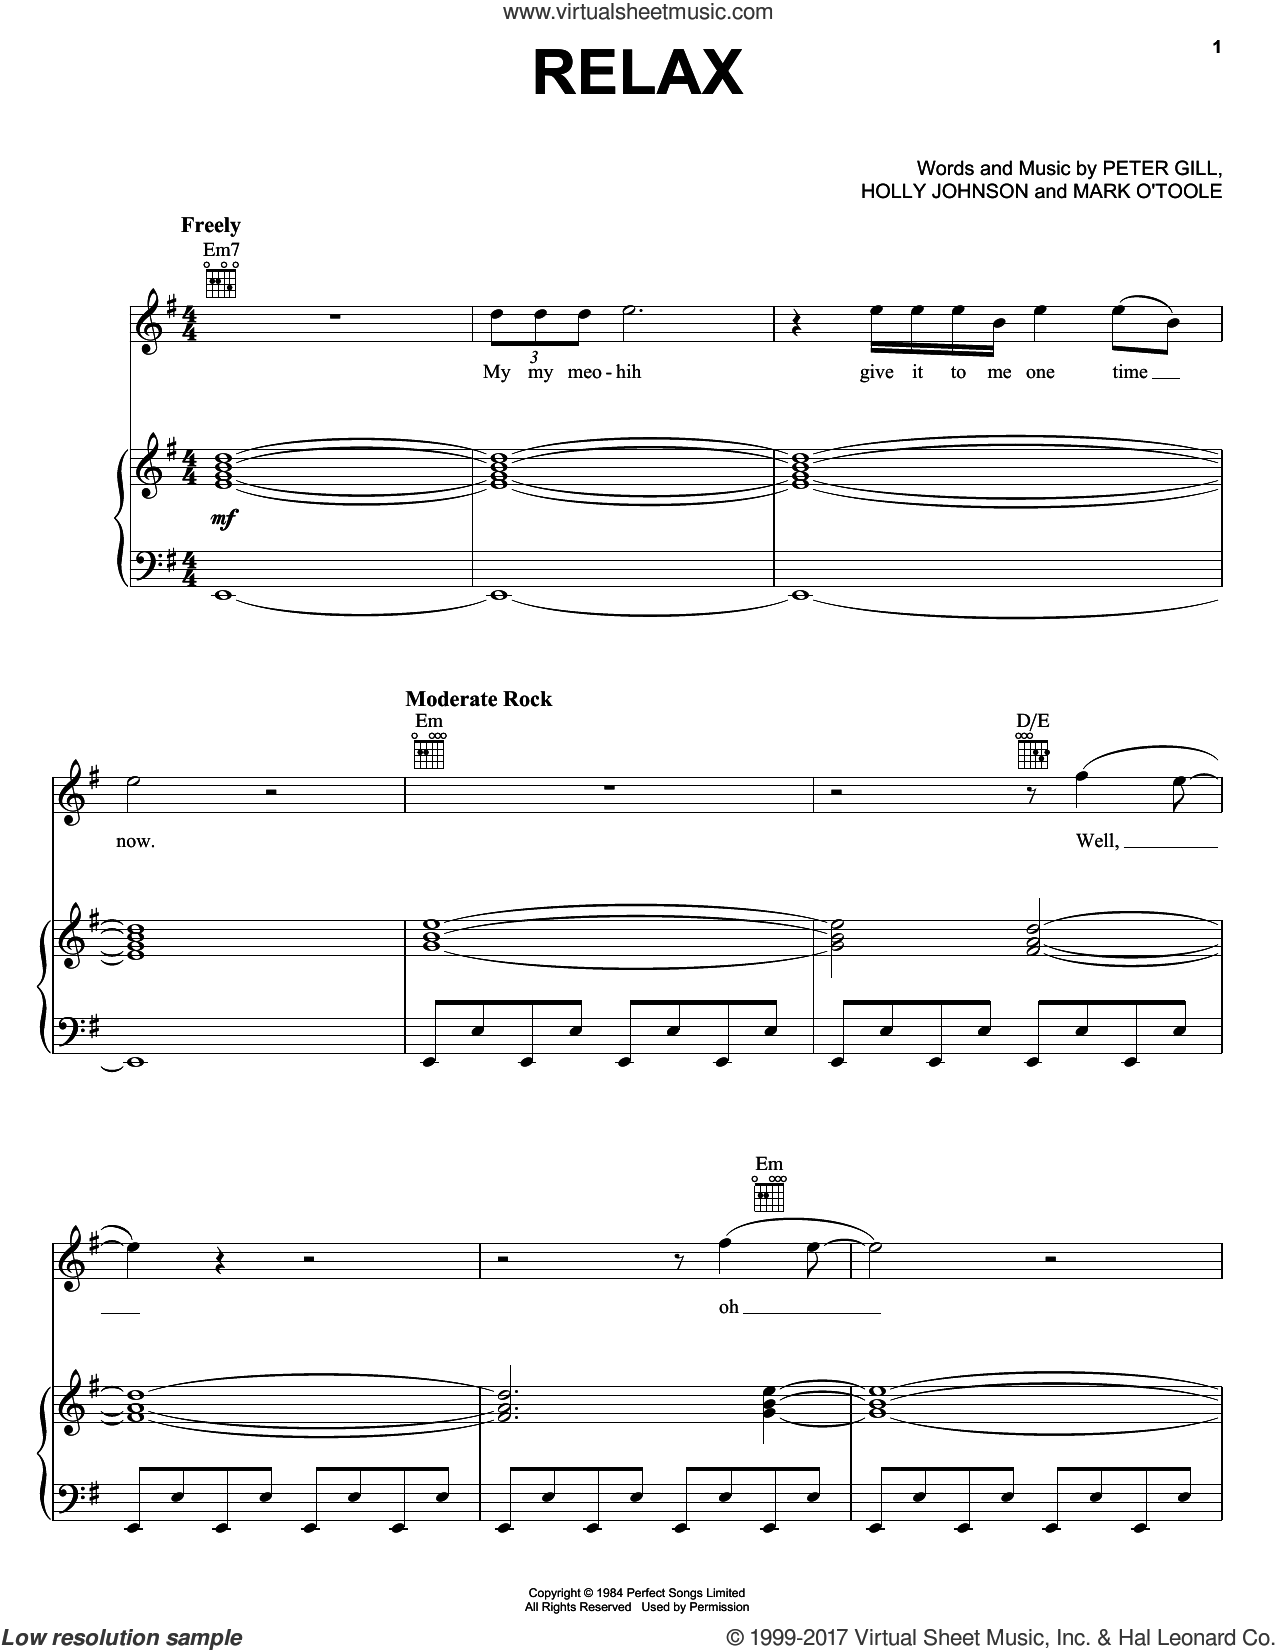 Relax sheet music for voice, piano or guitar by Peter Gill and Holly Johnson, intermediate skill level